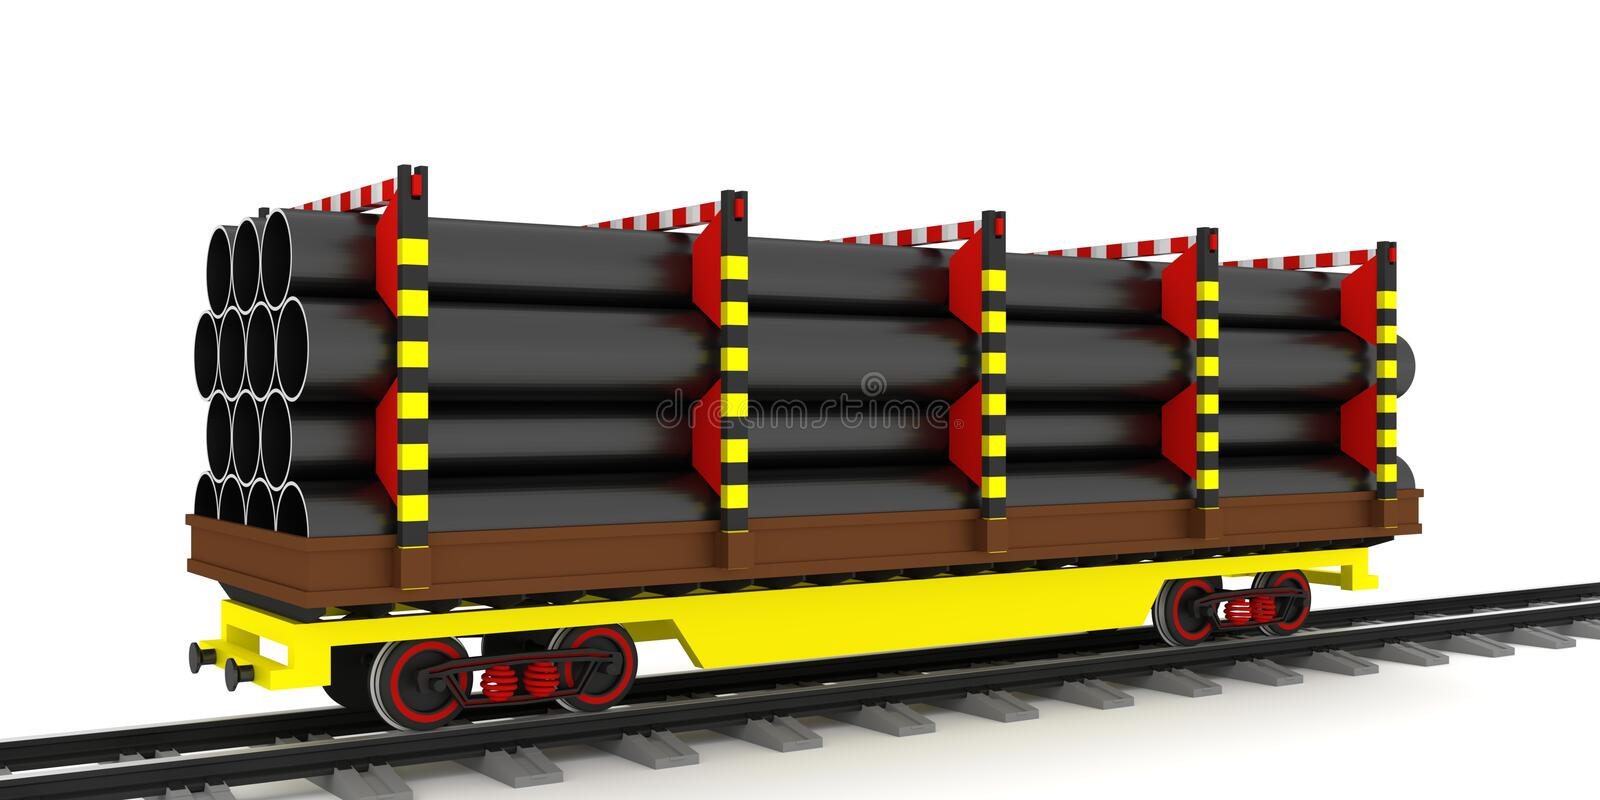 Railway freight wagon, transportation steel pipes vector illustration